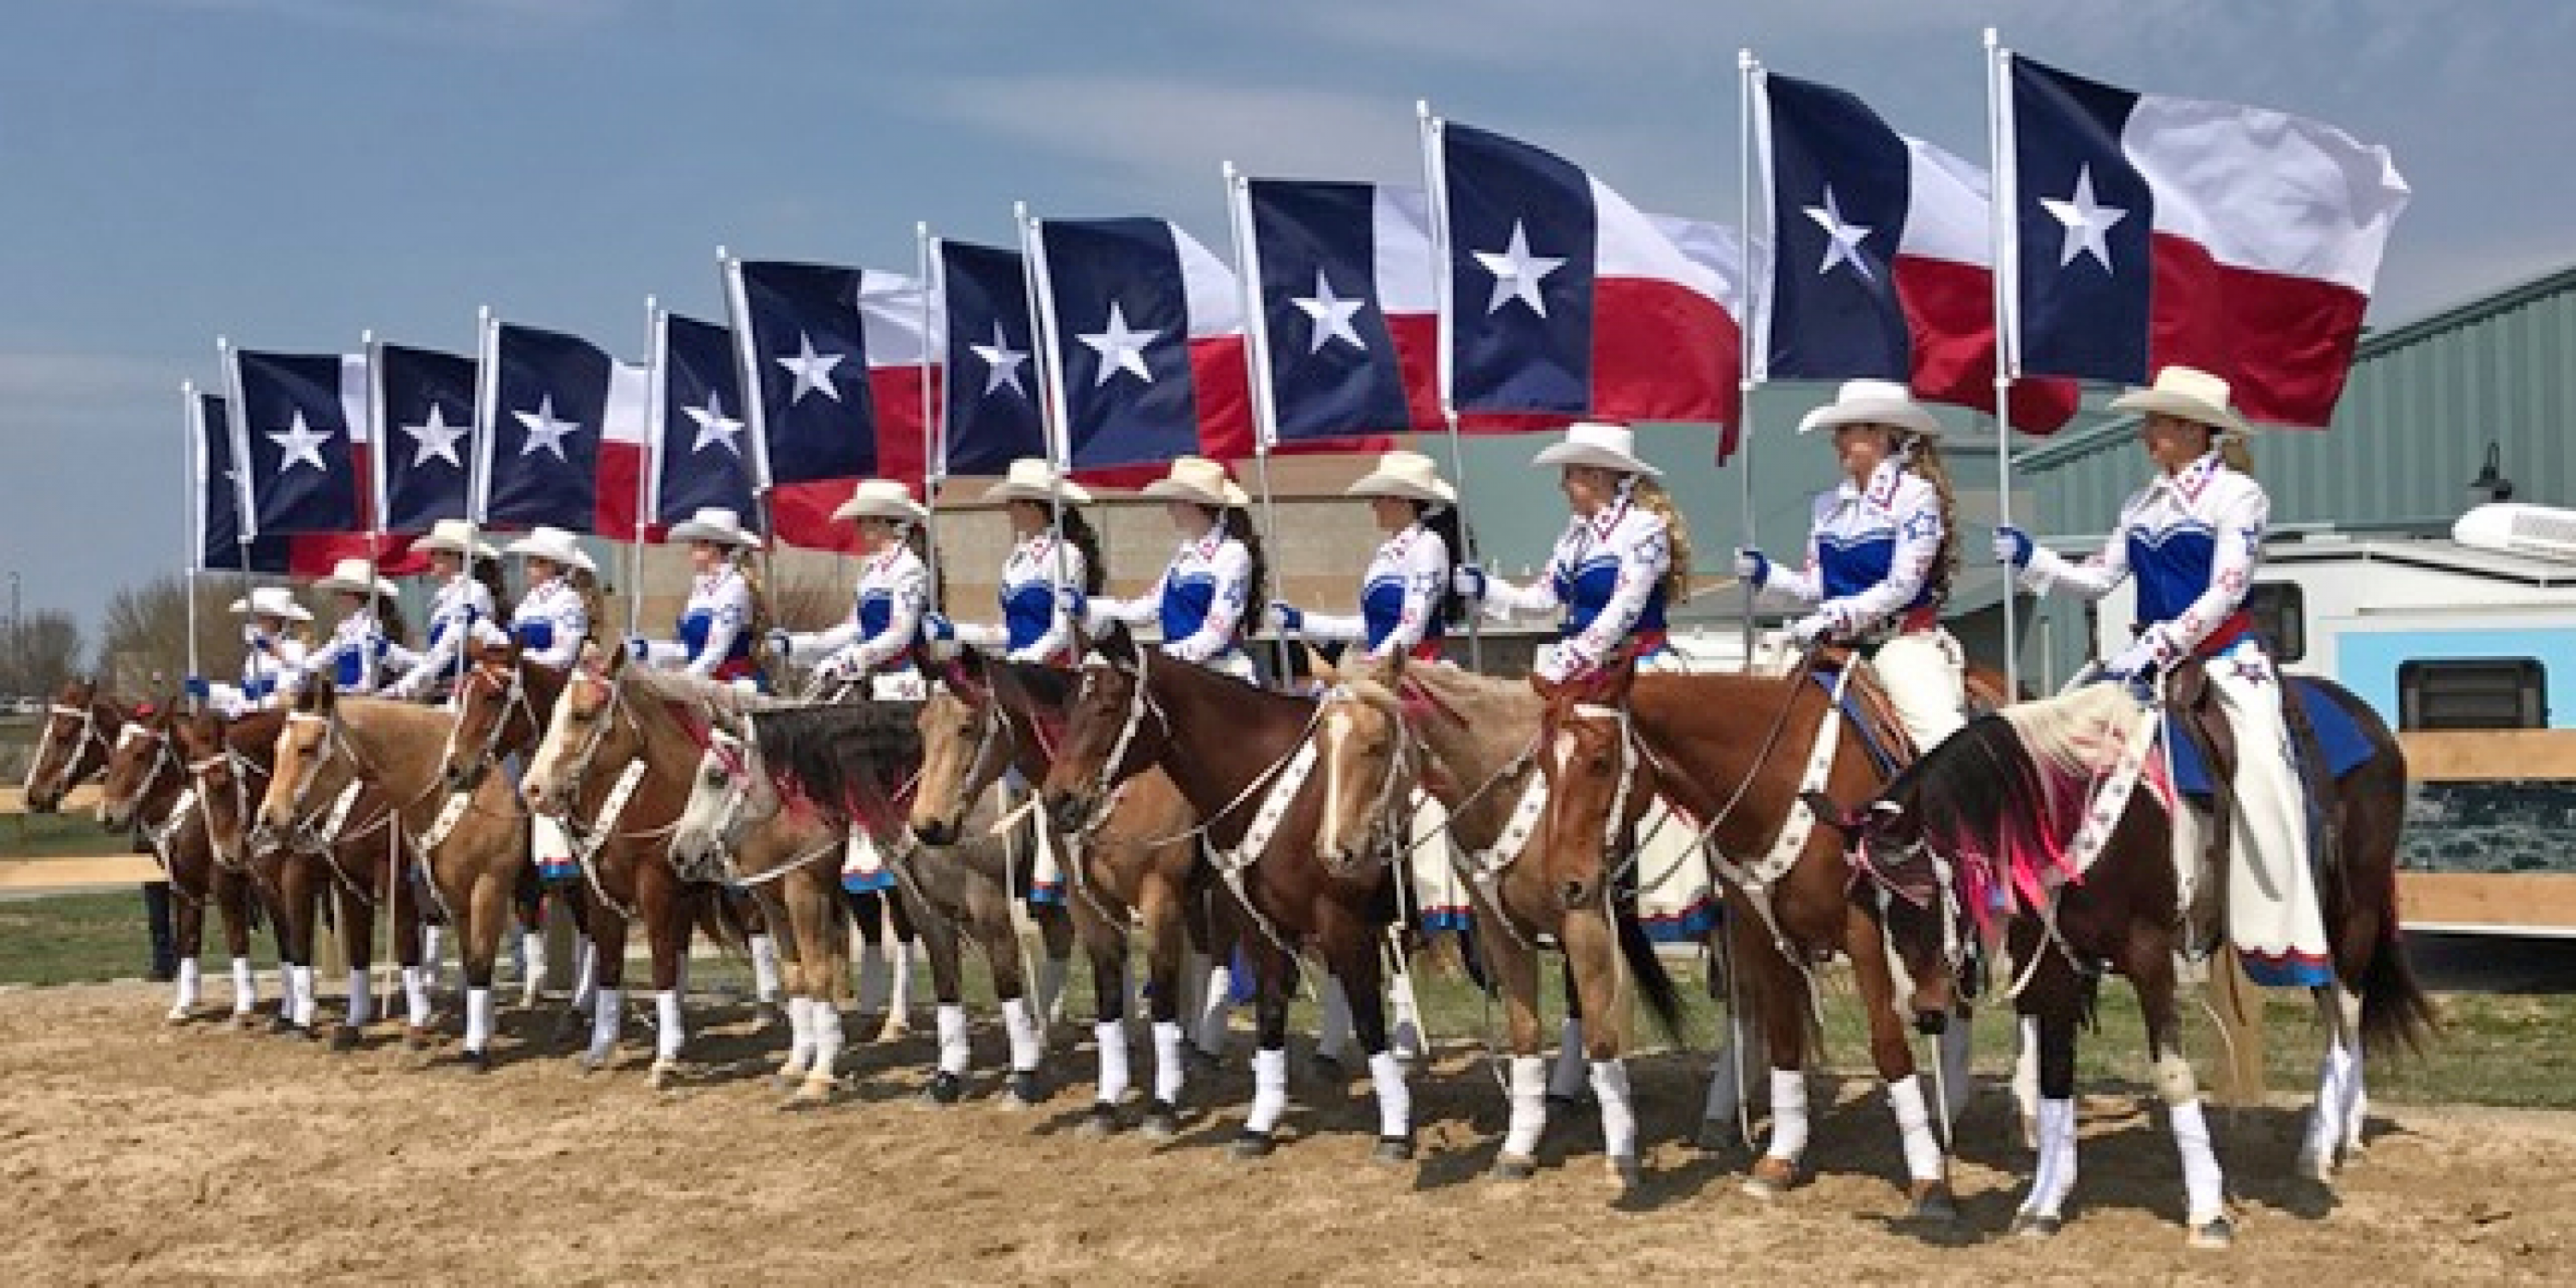 PRIME TIME EXPRESS - NATIONAL CHAMPIONSHIP EQUESTRIAN DRILL TEAM